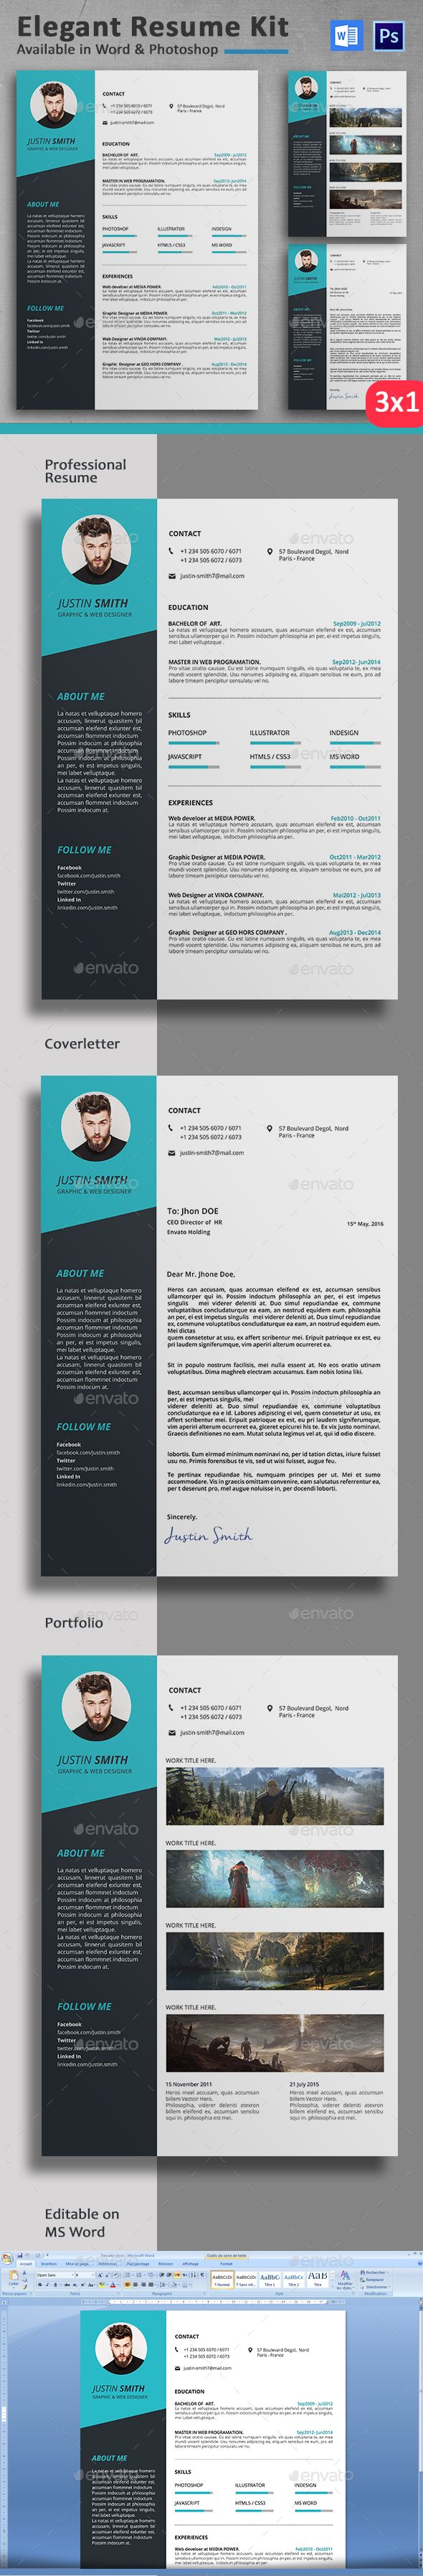 funny cv template - Fast.lunchrock.co